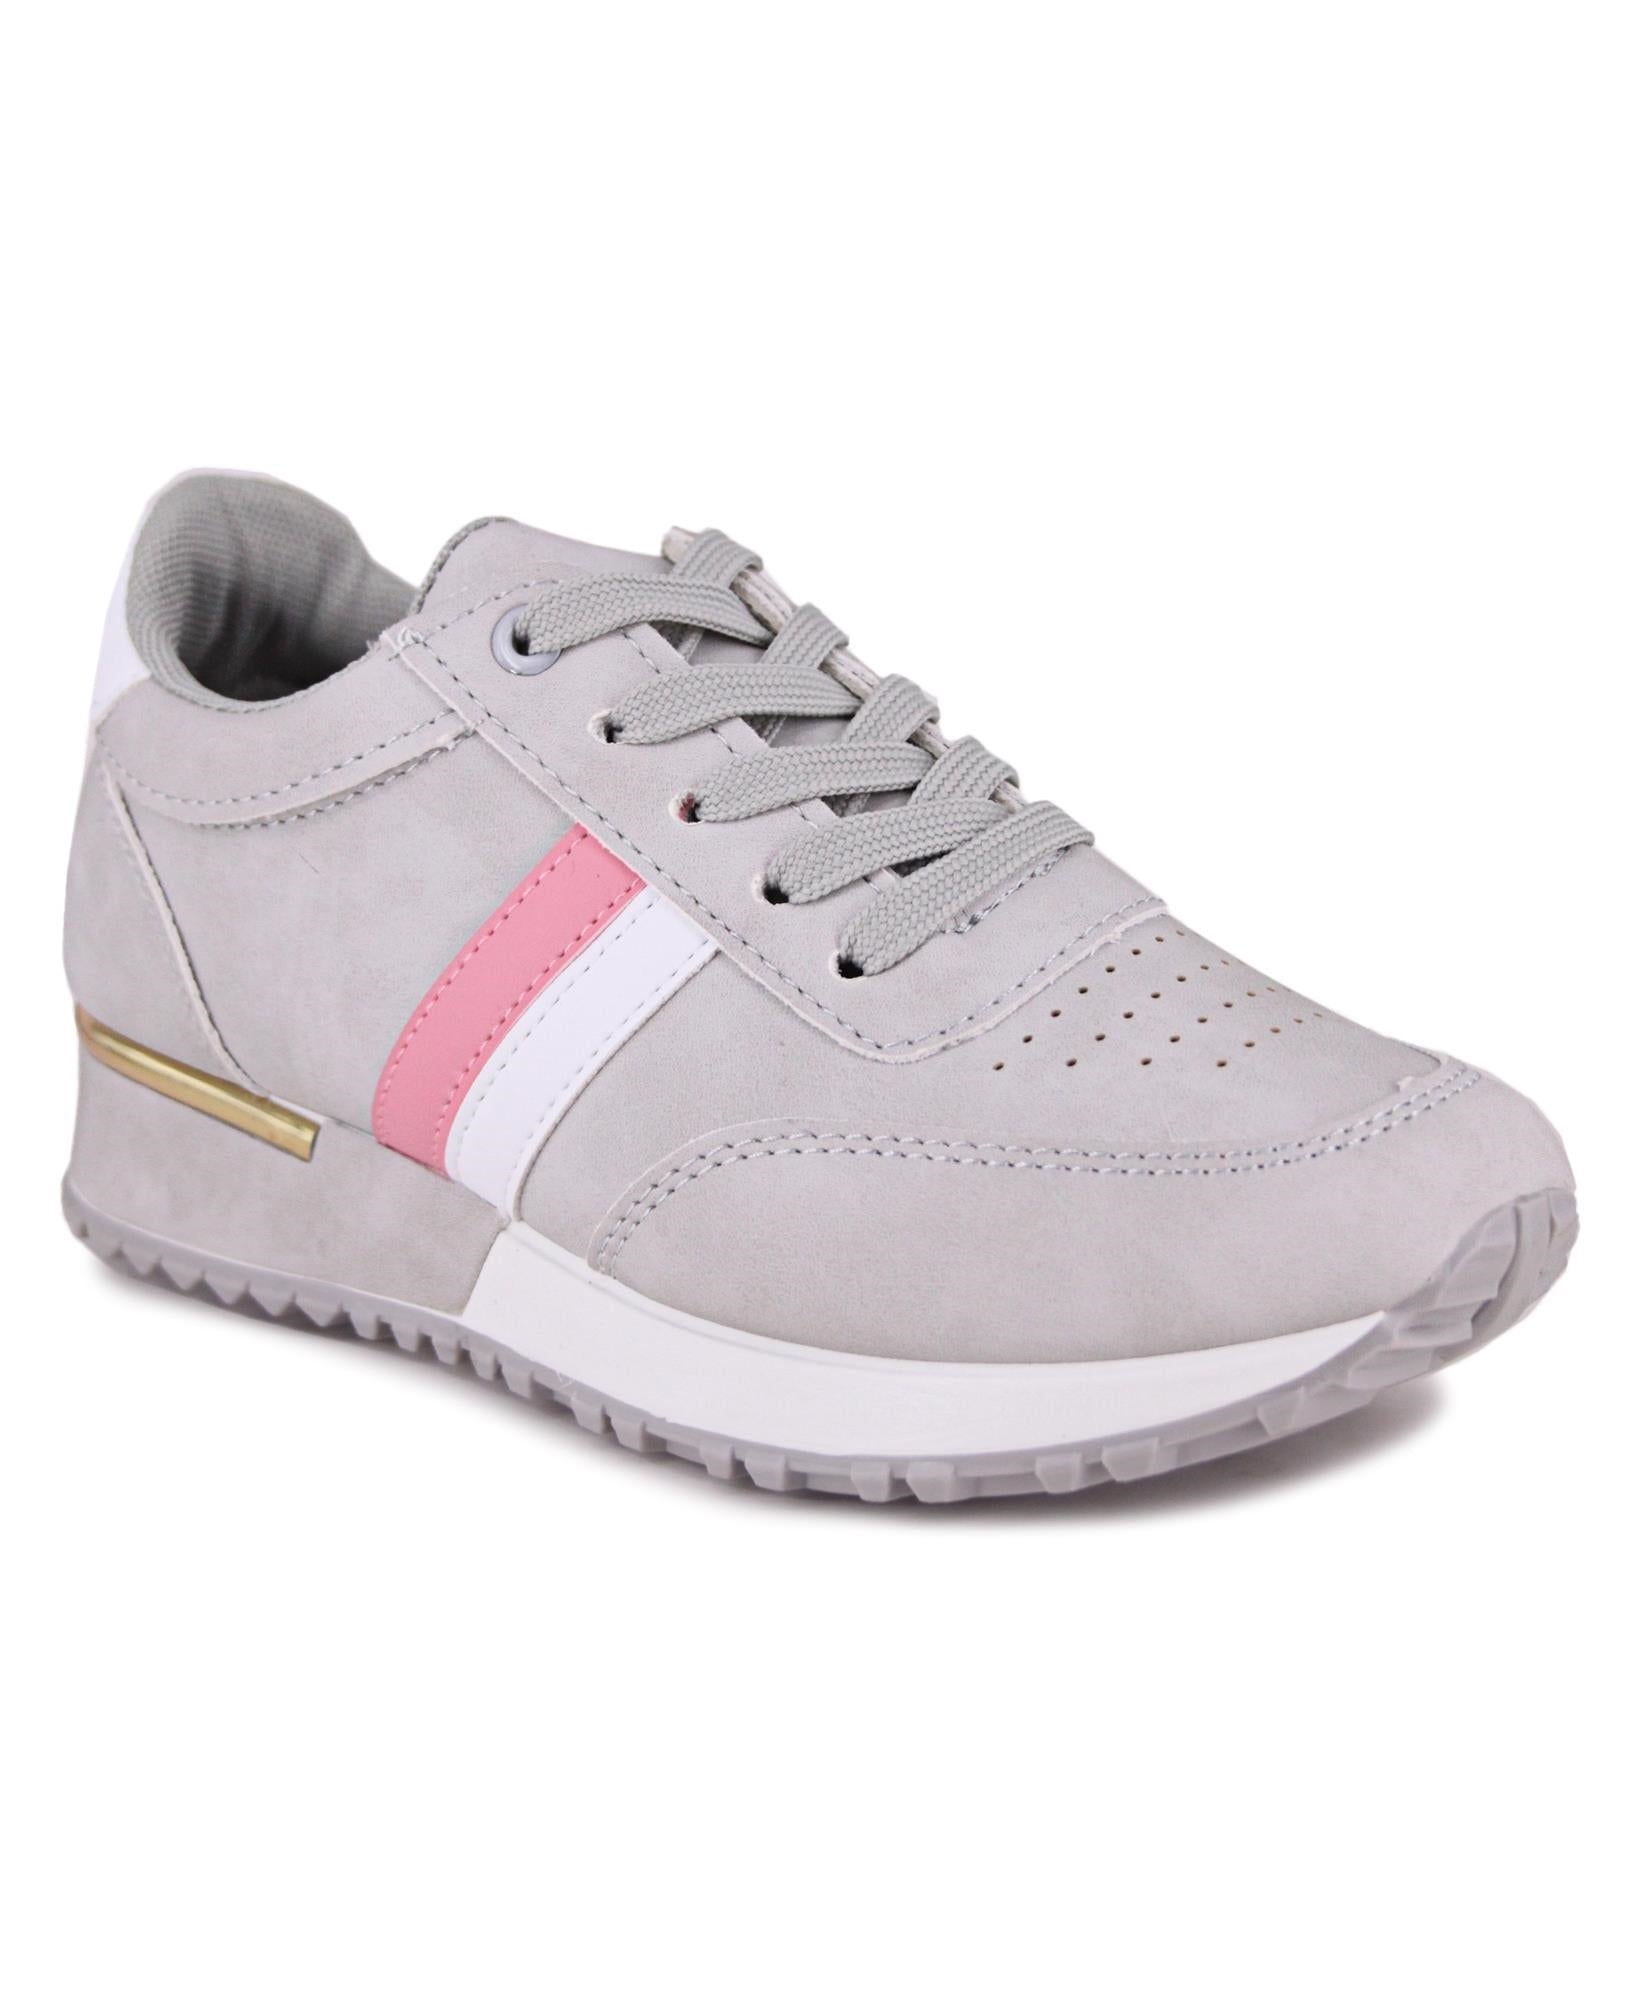 Ladies' Balance Stripe Sneakers - Grey